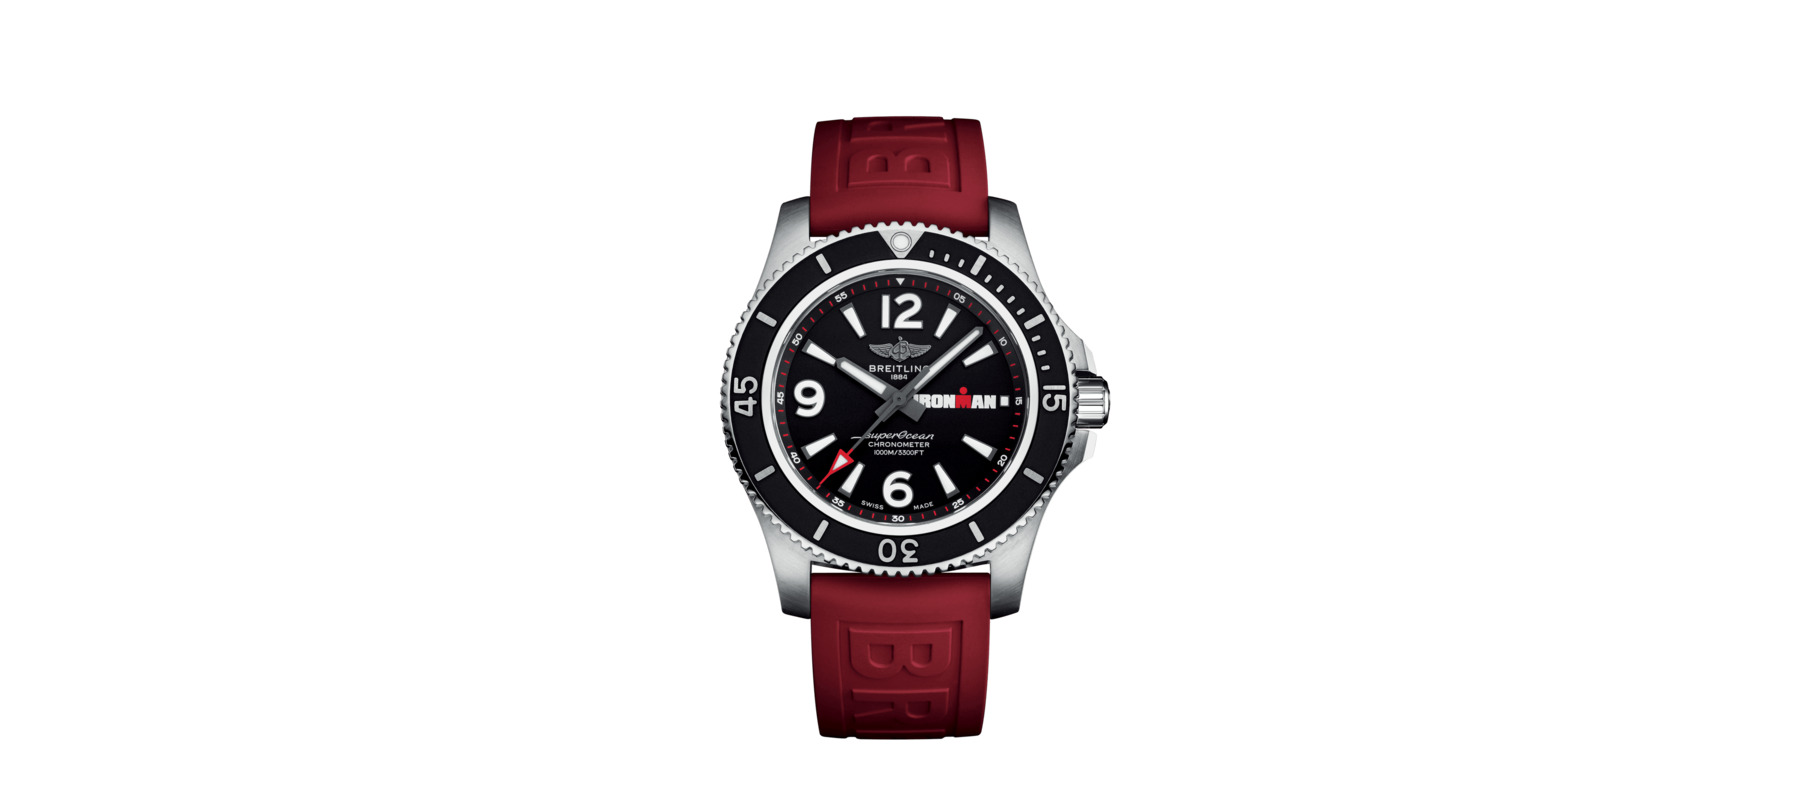 a17371a11b1s1-superocean-automatic-44-ironman-limited-edition-soldier.jpg